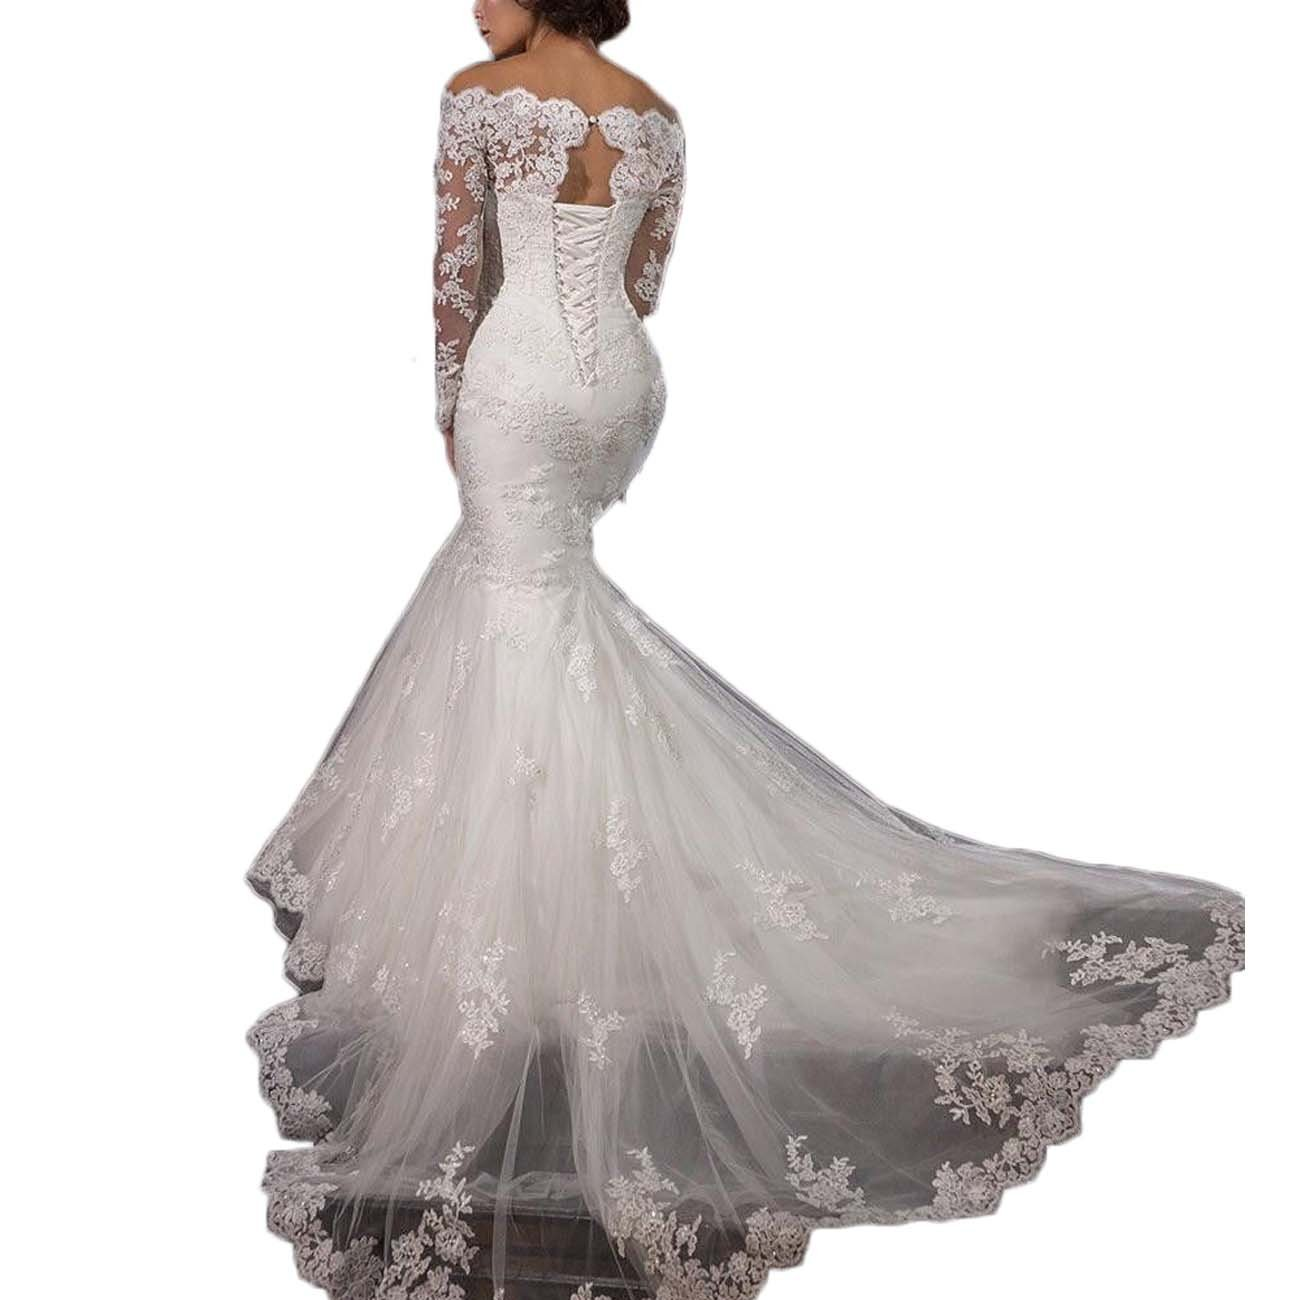 Thrsaeyi Gorgeous Mermaid Wedding Dresses Lace Applique Bridal Gowns